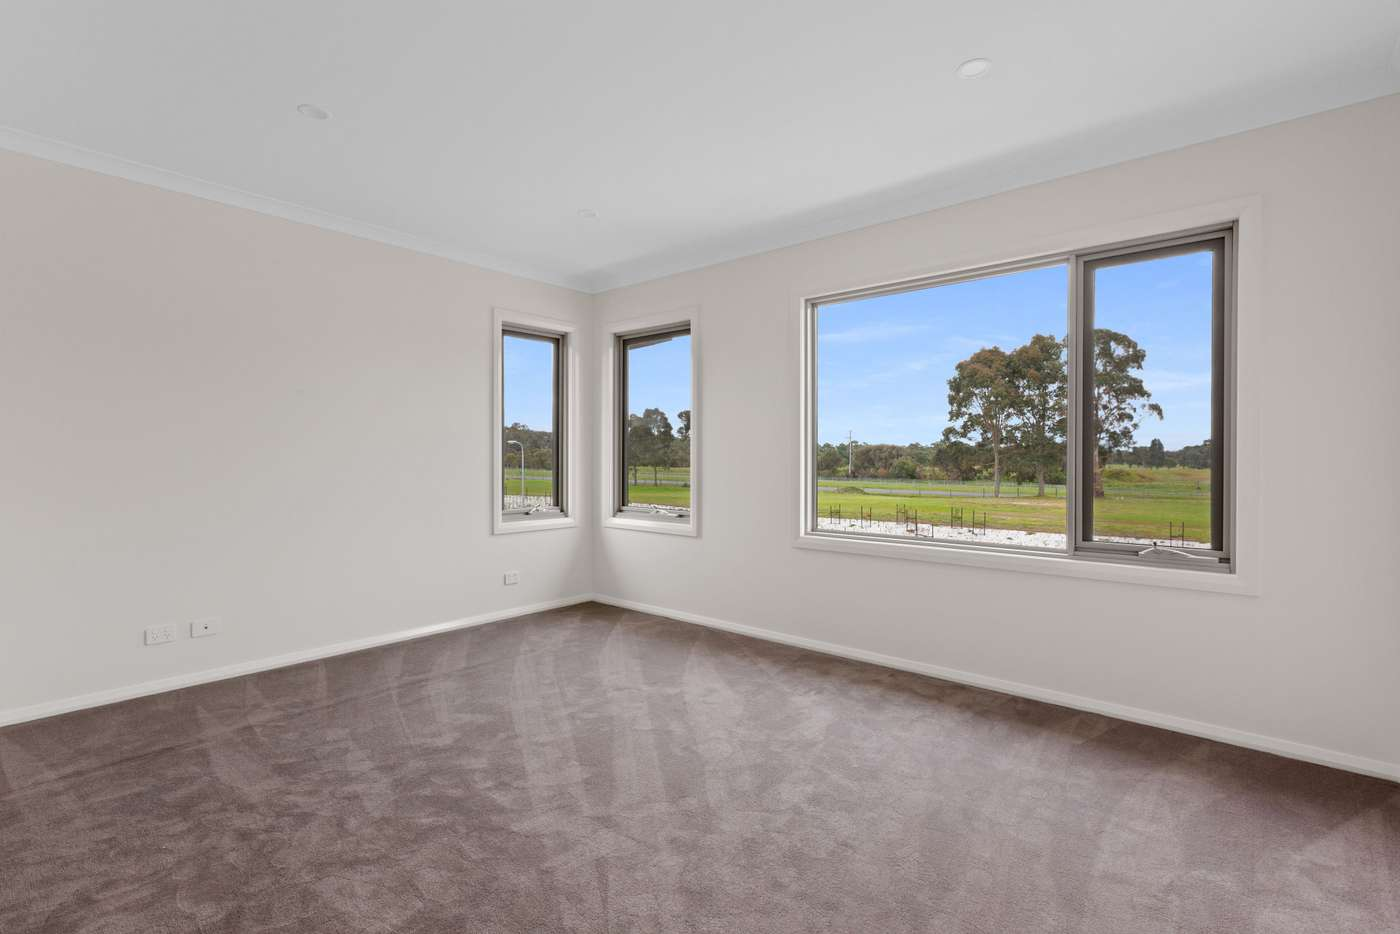 Sixth view of Homely house listing, 1 Abacus Lane, Cranbourne South VIC 3977